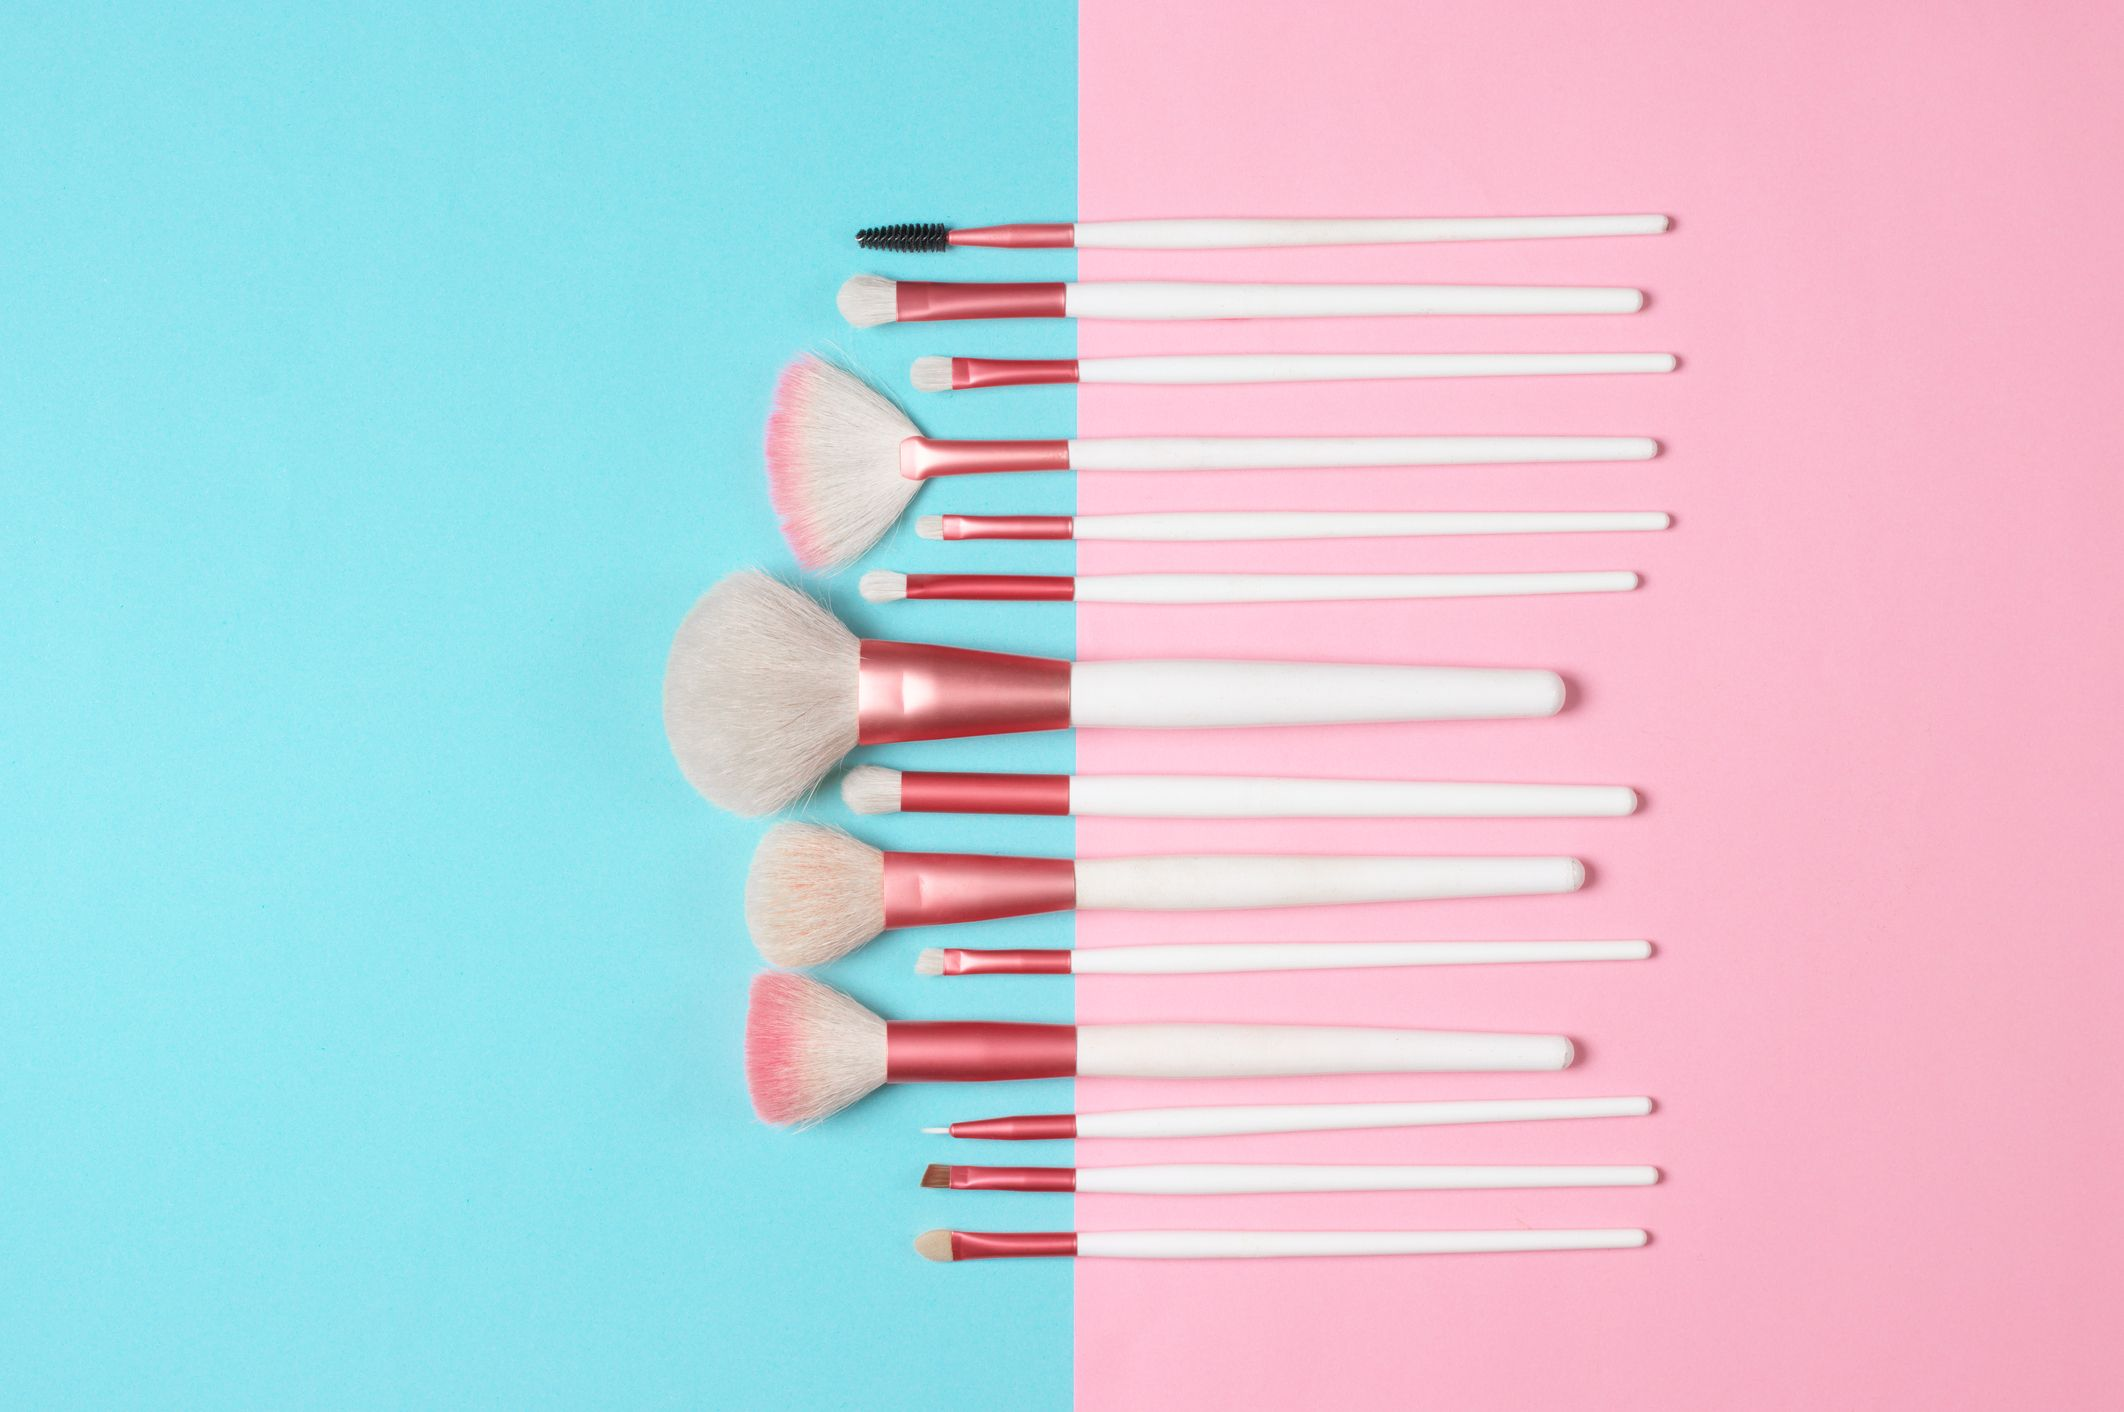 How to Clean Your Makeup Brushes - Tips for Cleansing Makeup Brushes ...